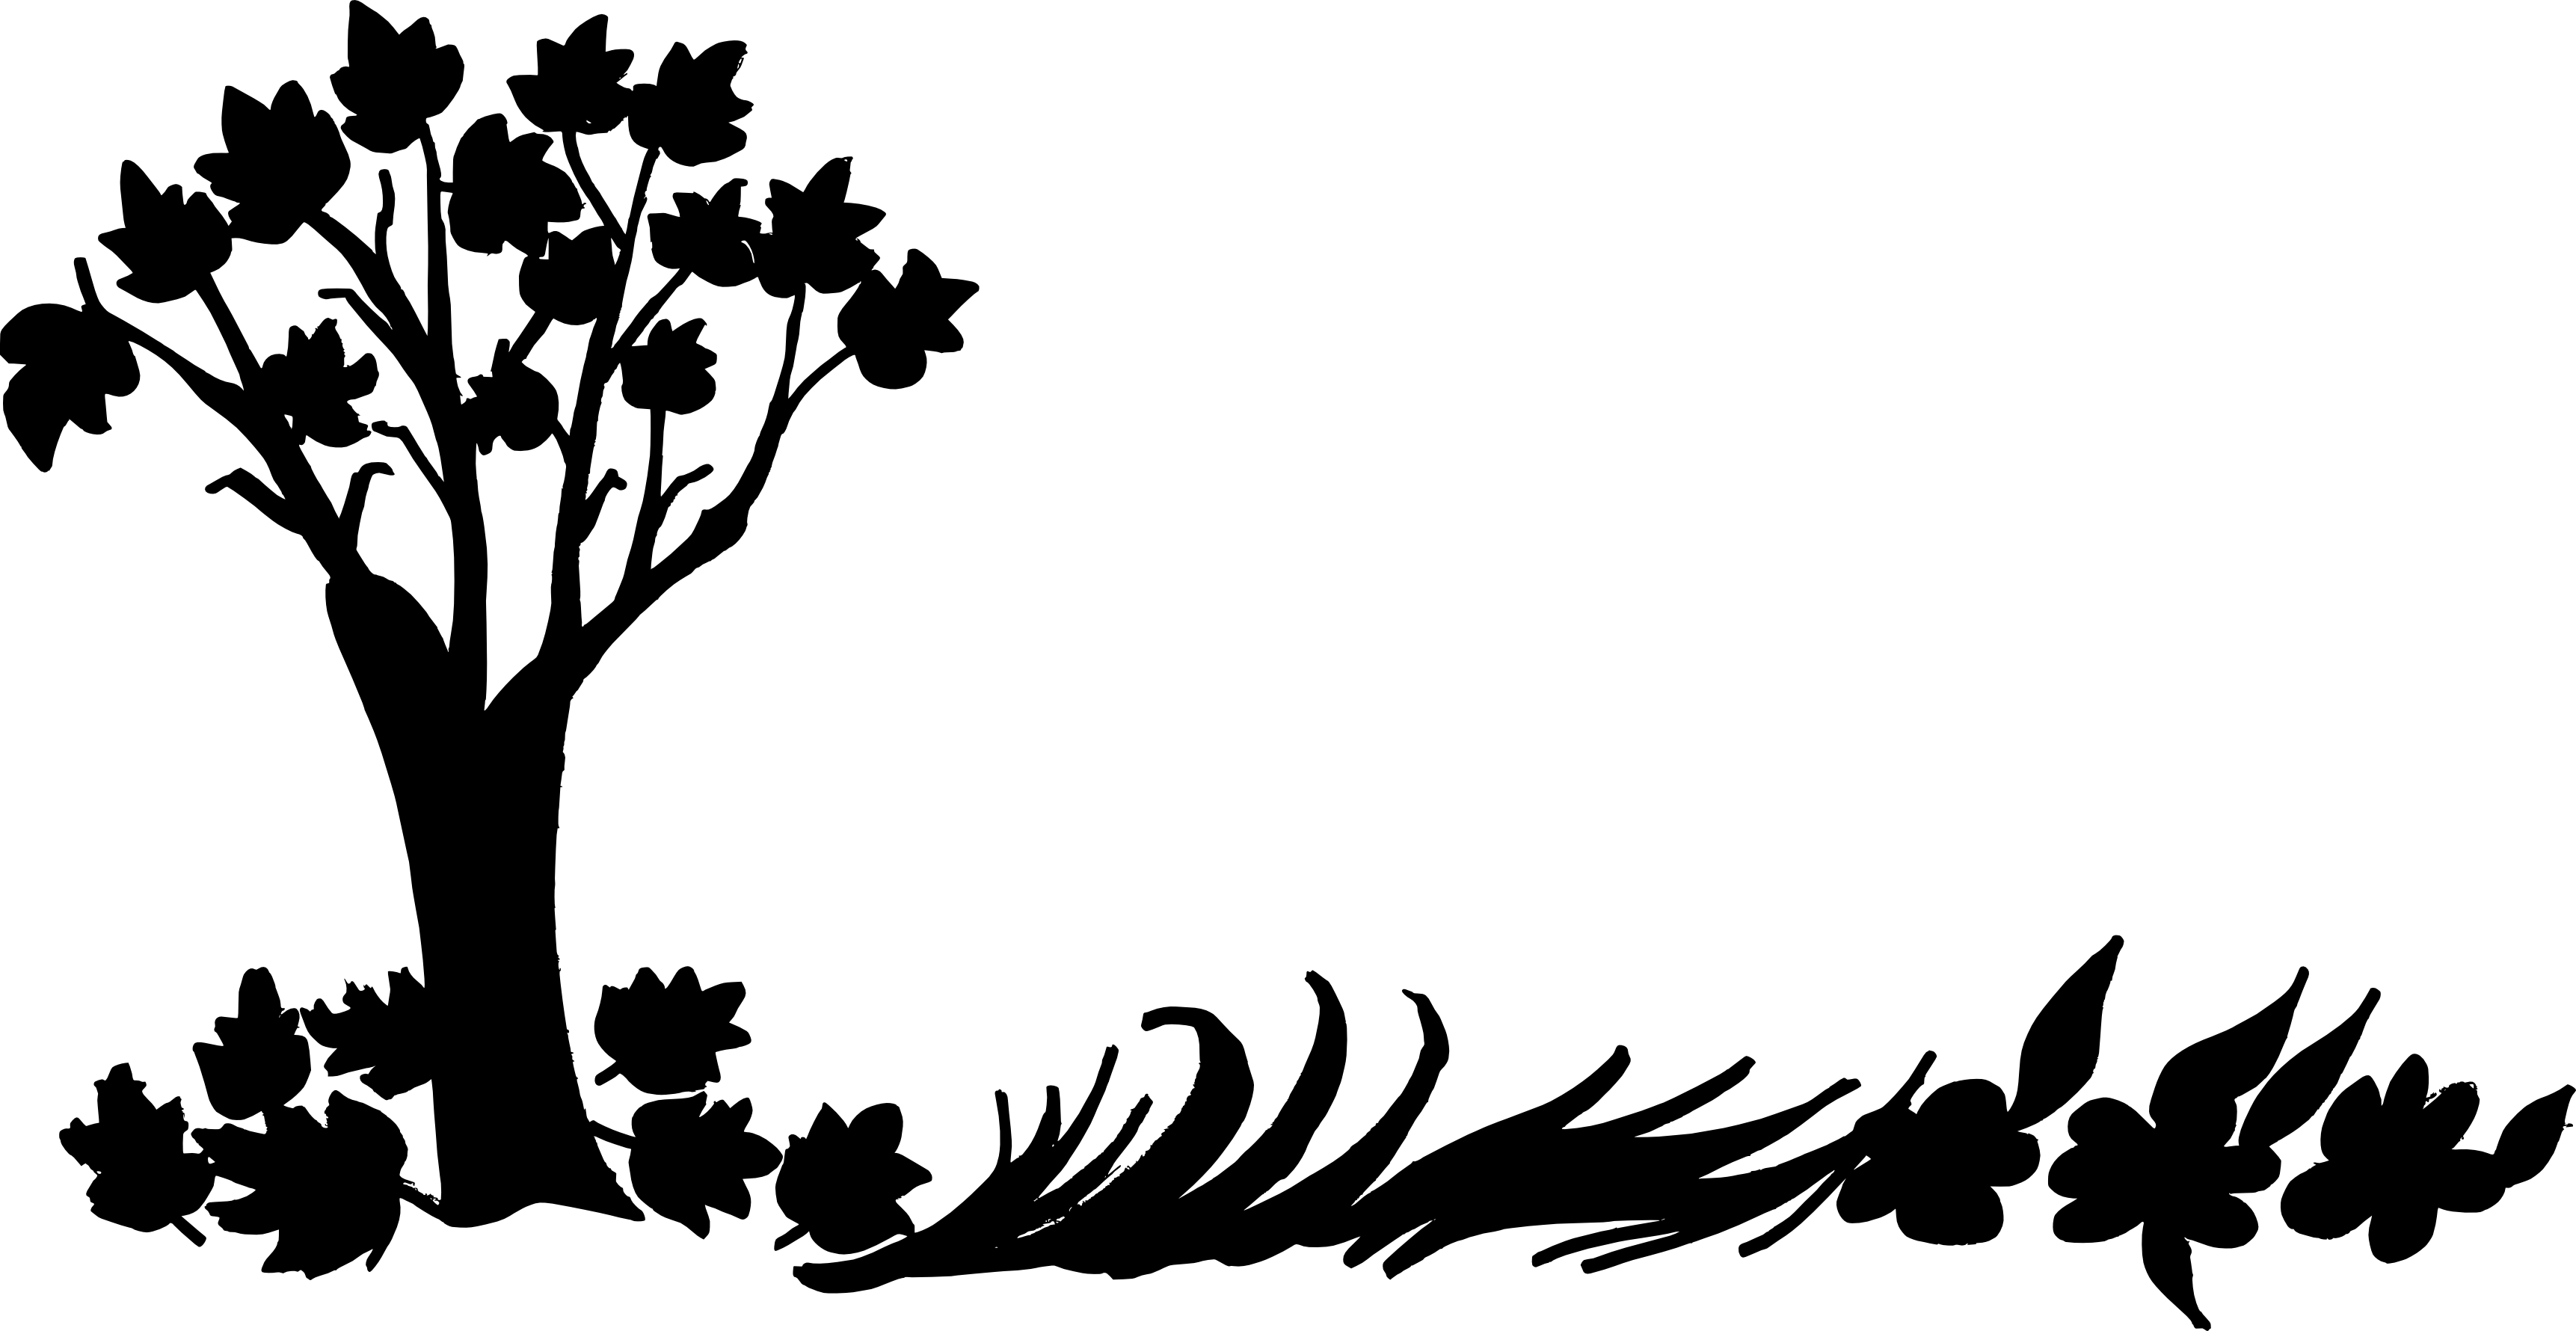 3445x1780 10 Nature Background Silhouette (Png Transparent)